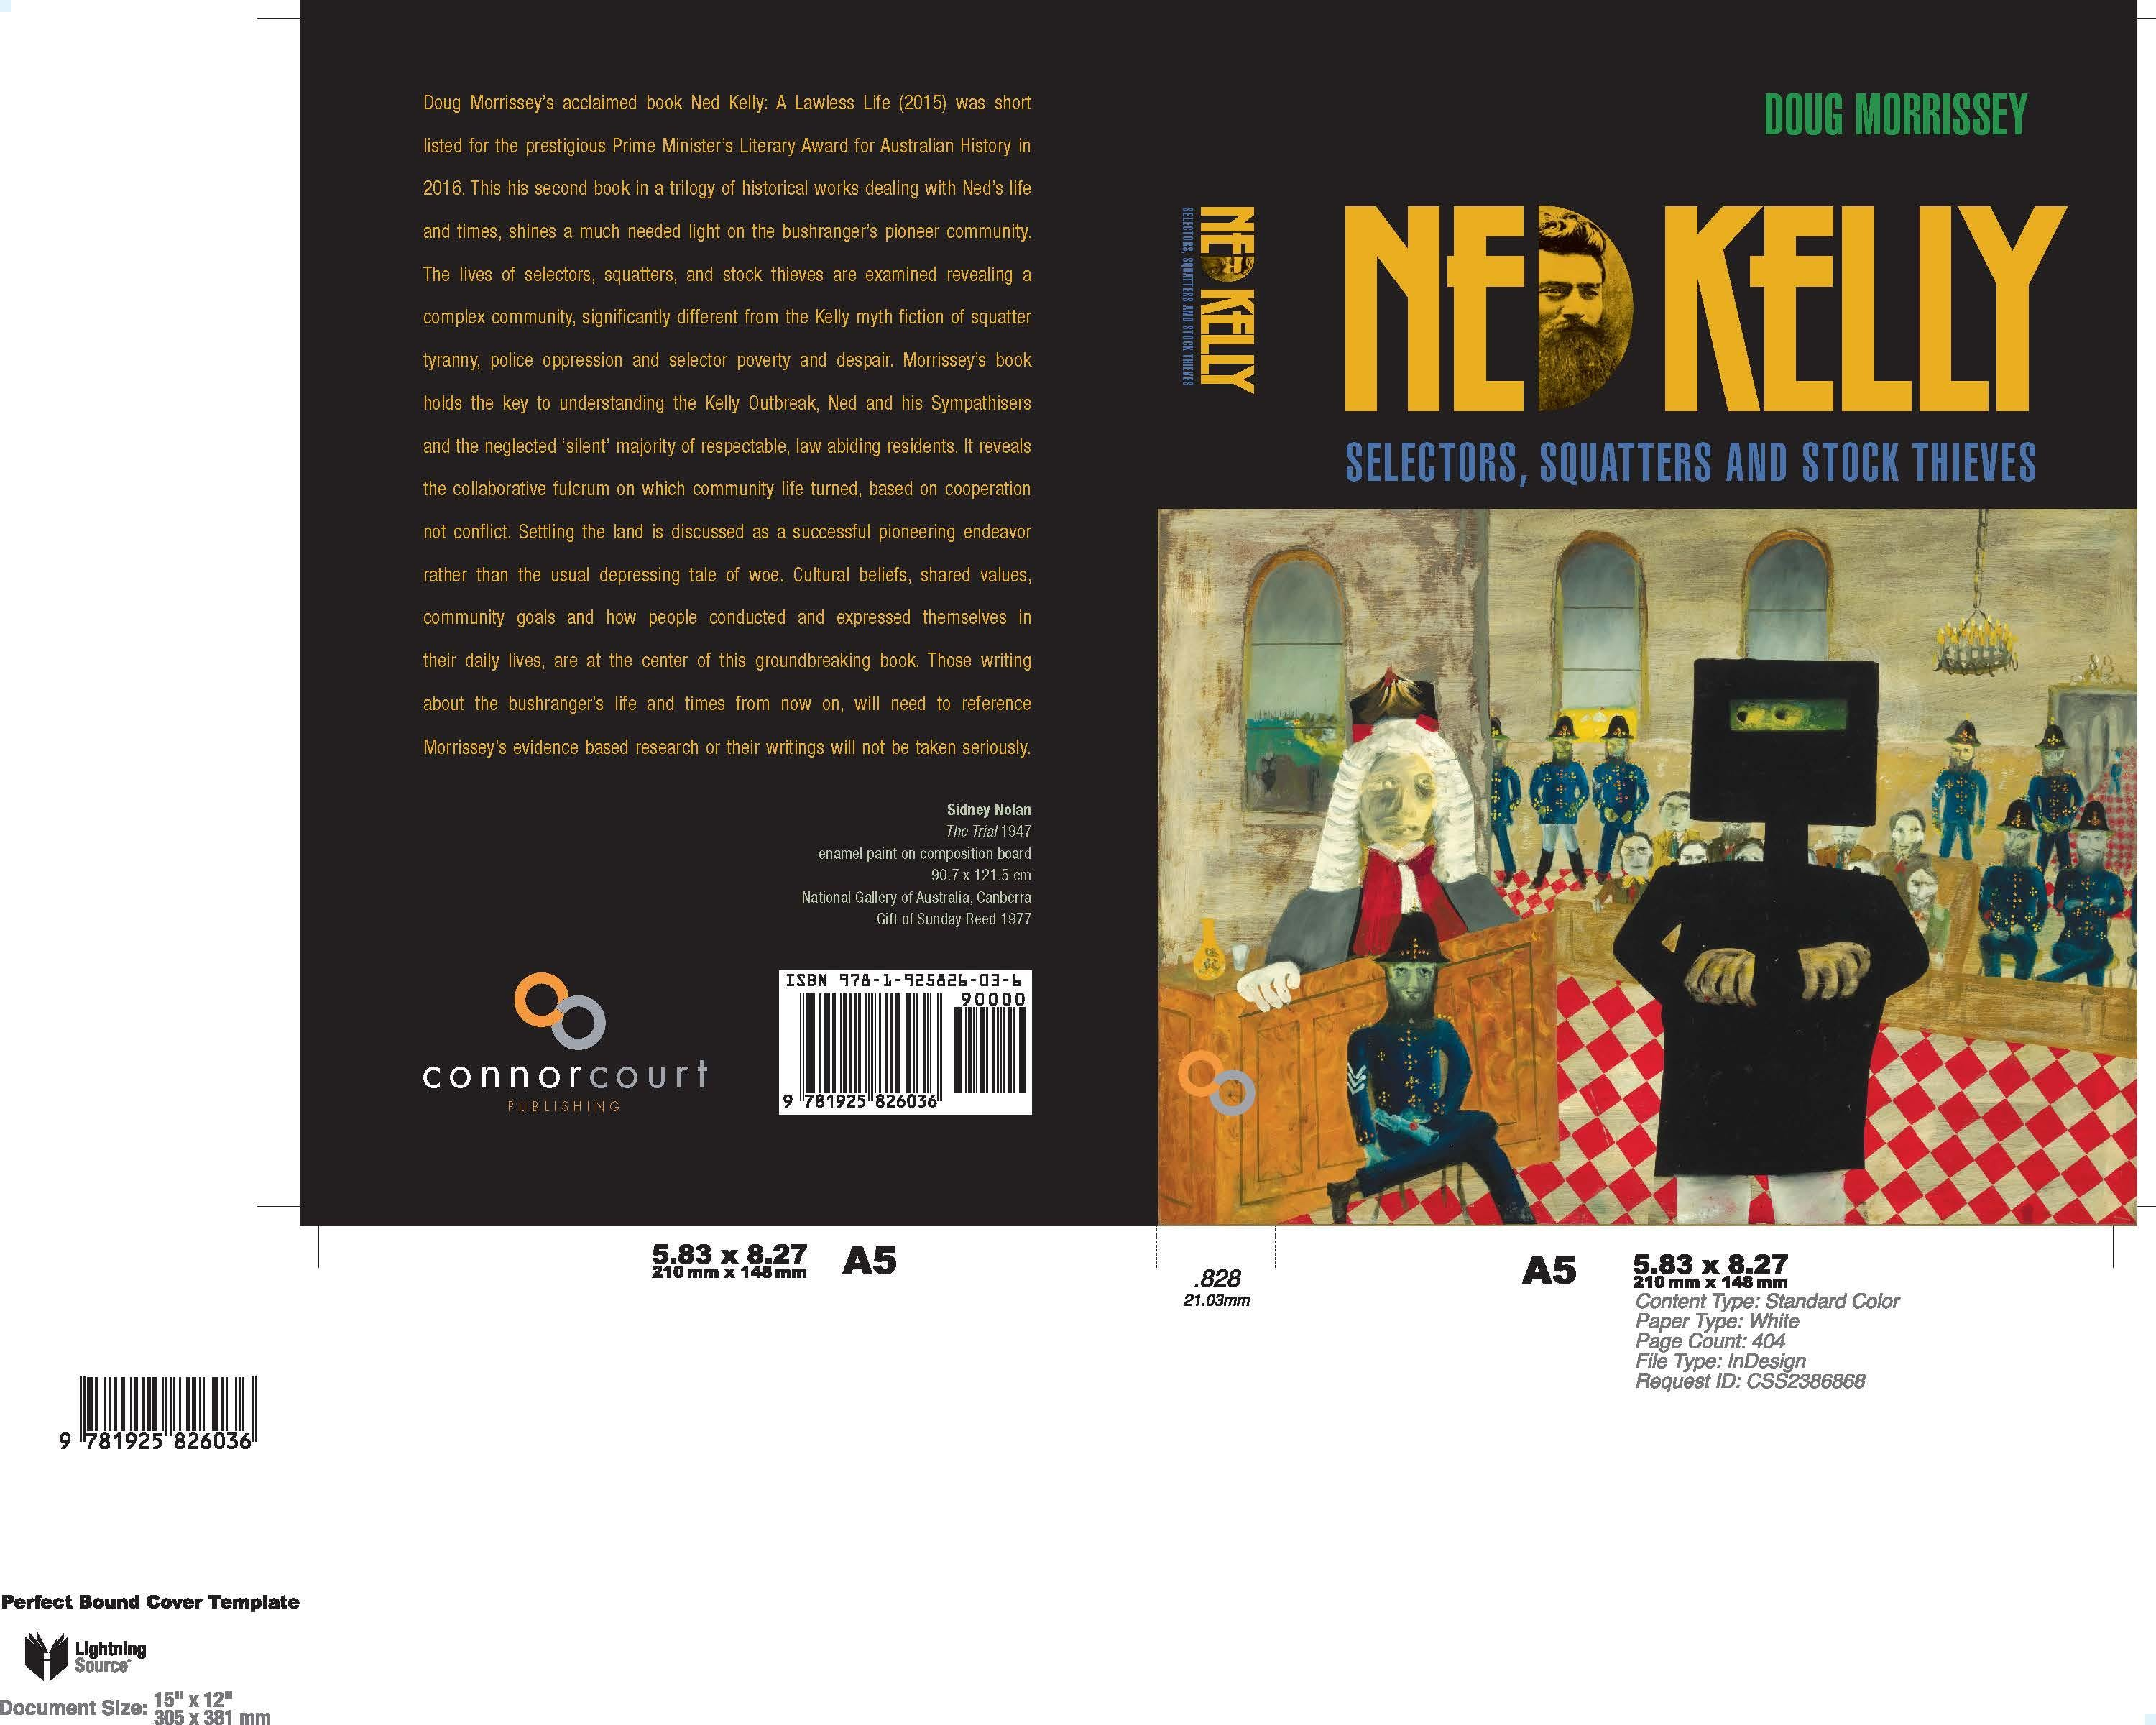 Launch of Ned Kelly: Selectors, Squatters and Stock Thieves